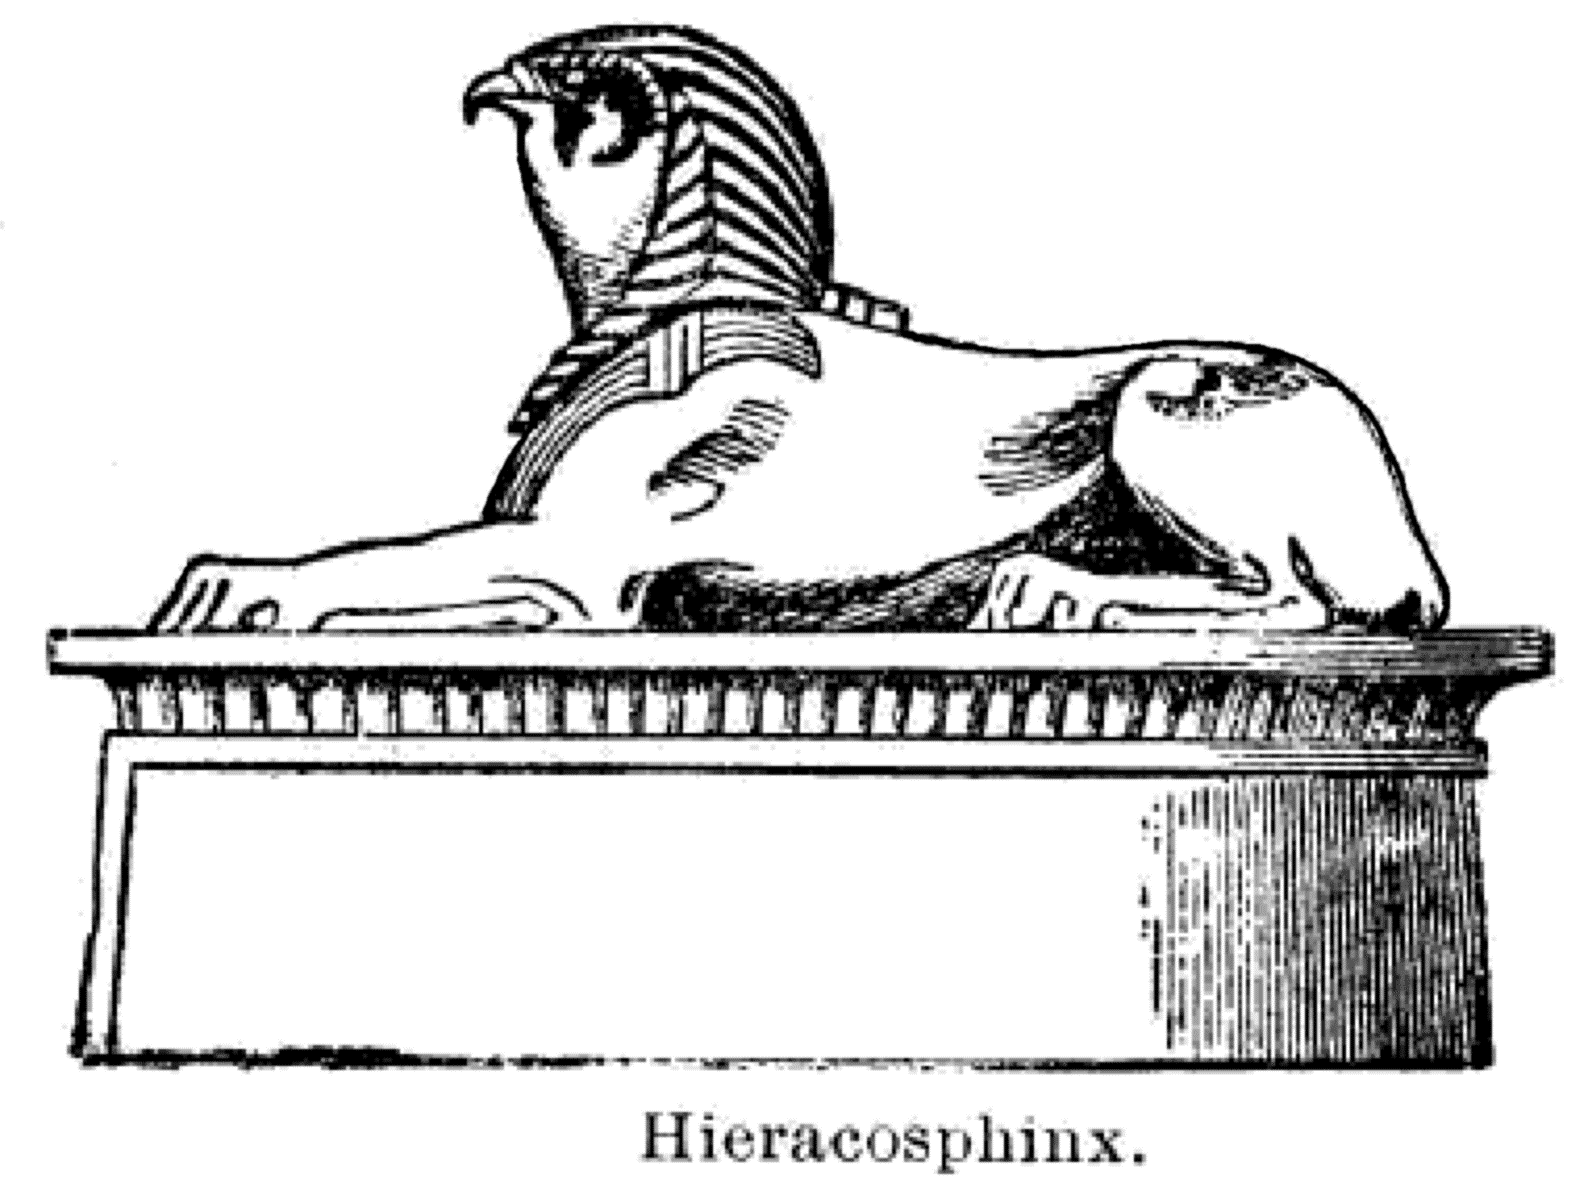 Egyptian Lion Drawing The Hieracosphinx—a